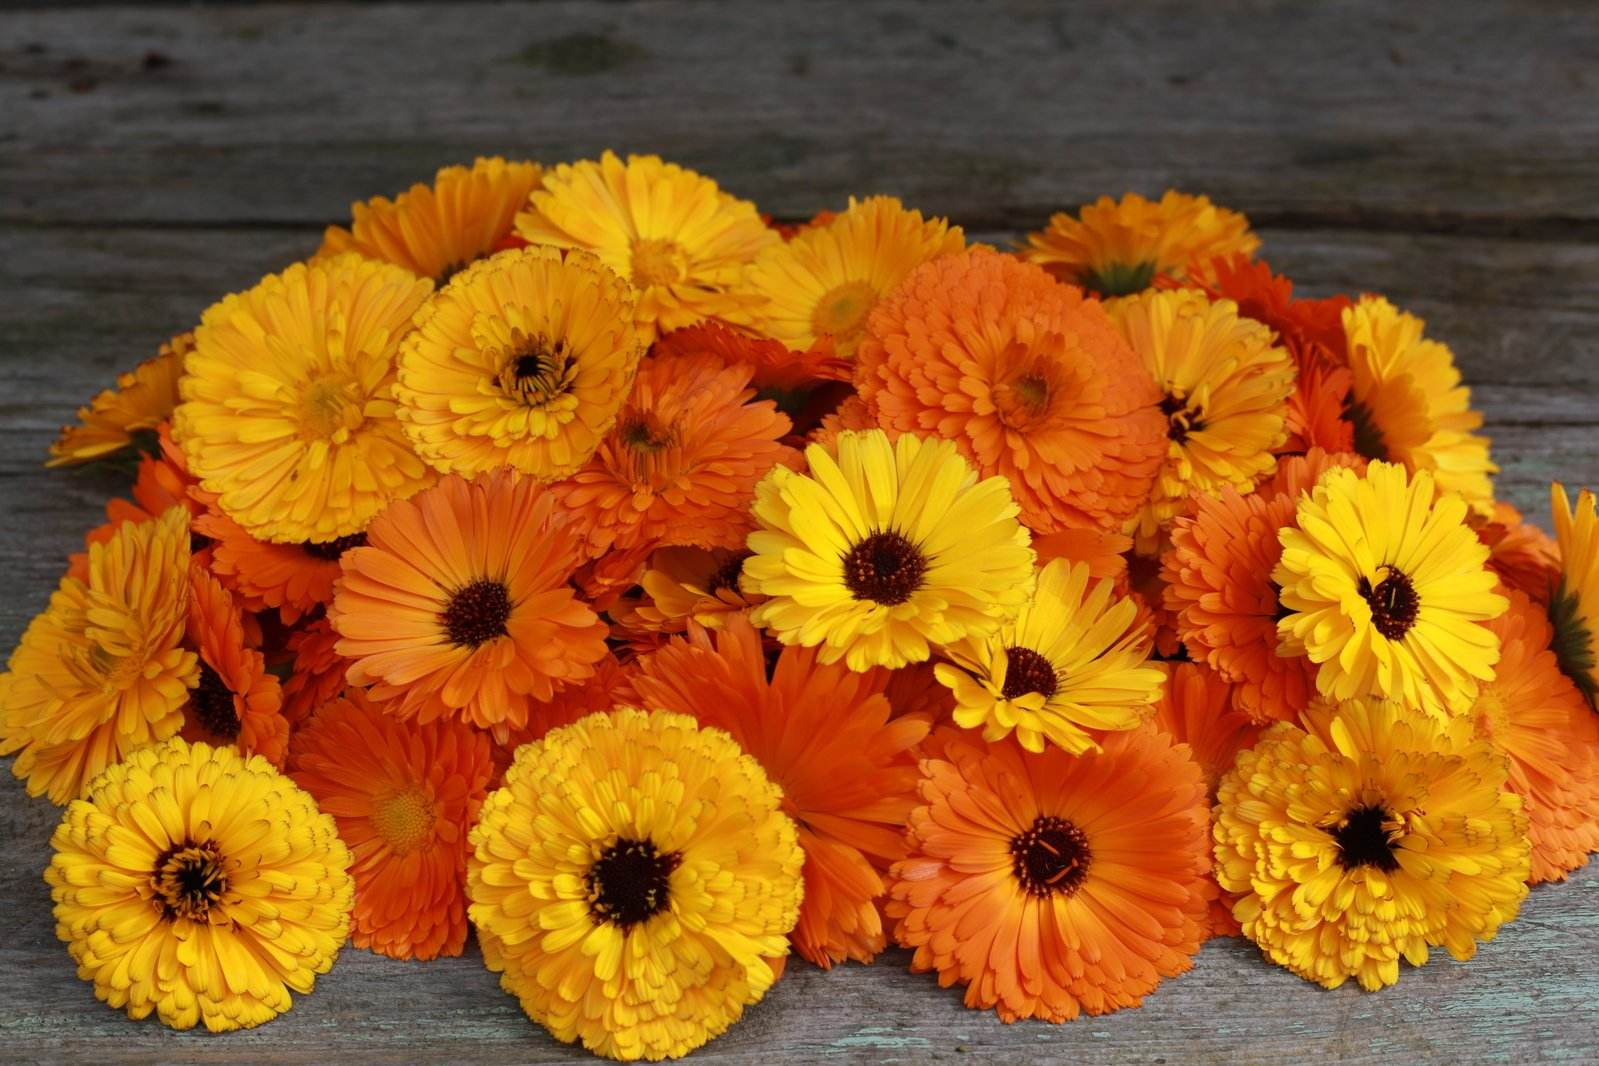 sunshine,health,Marigold,herbal extract,Tagetes erecta